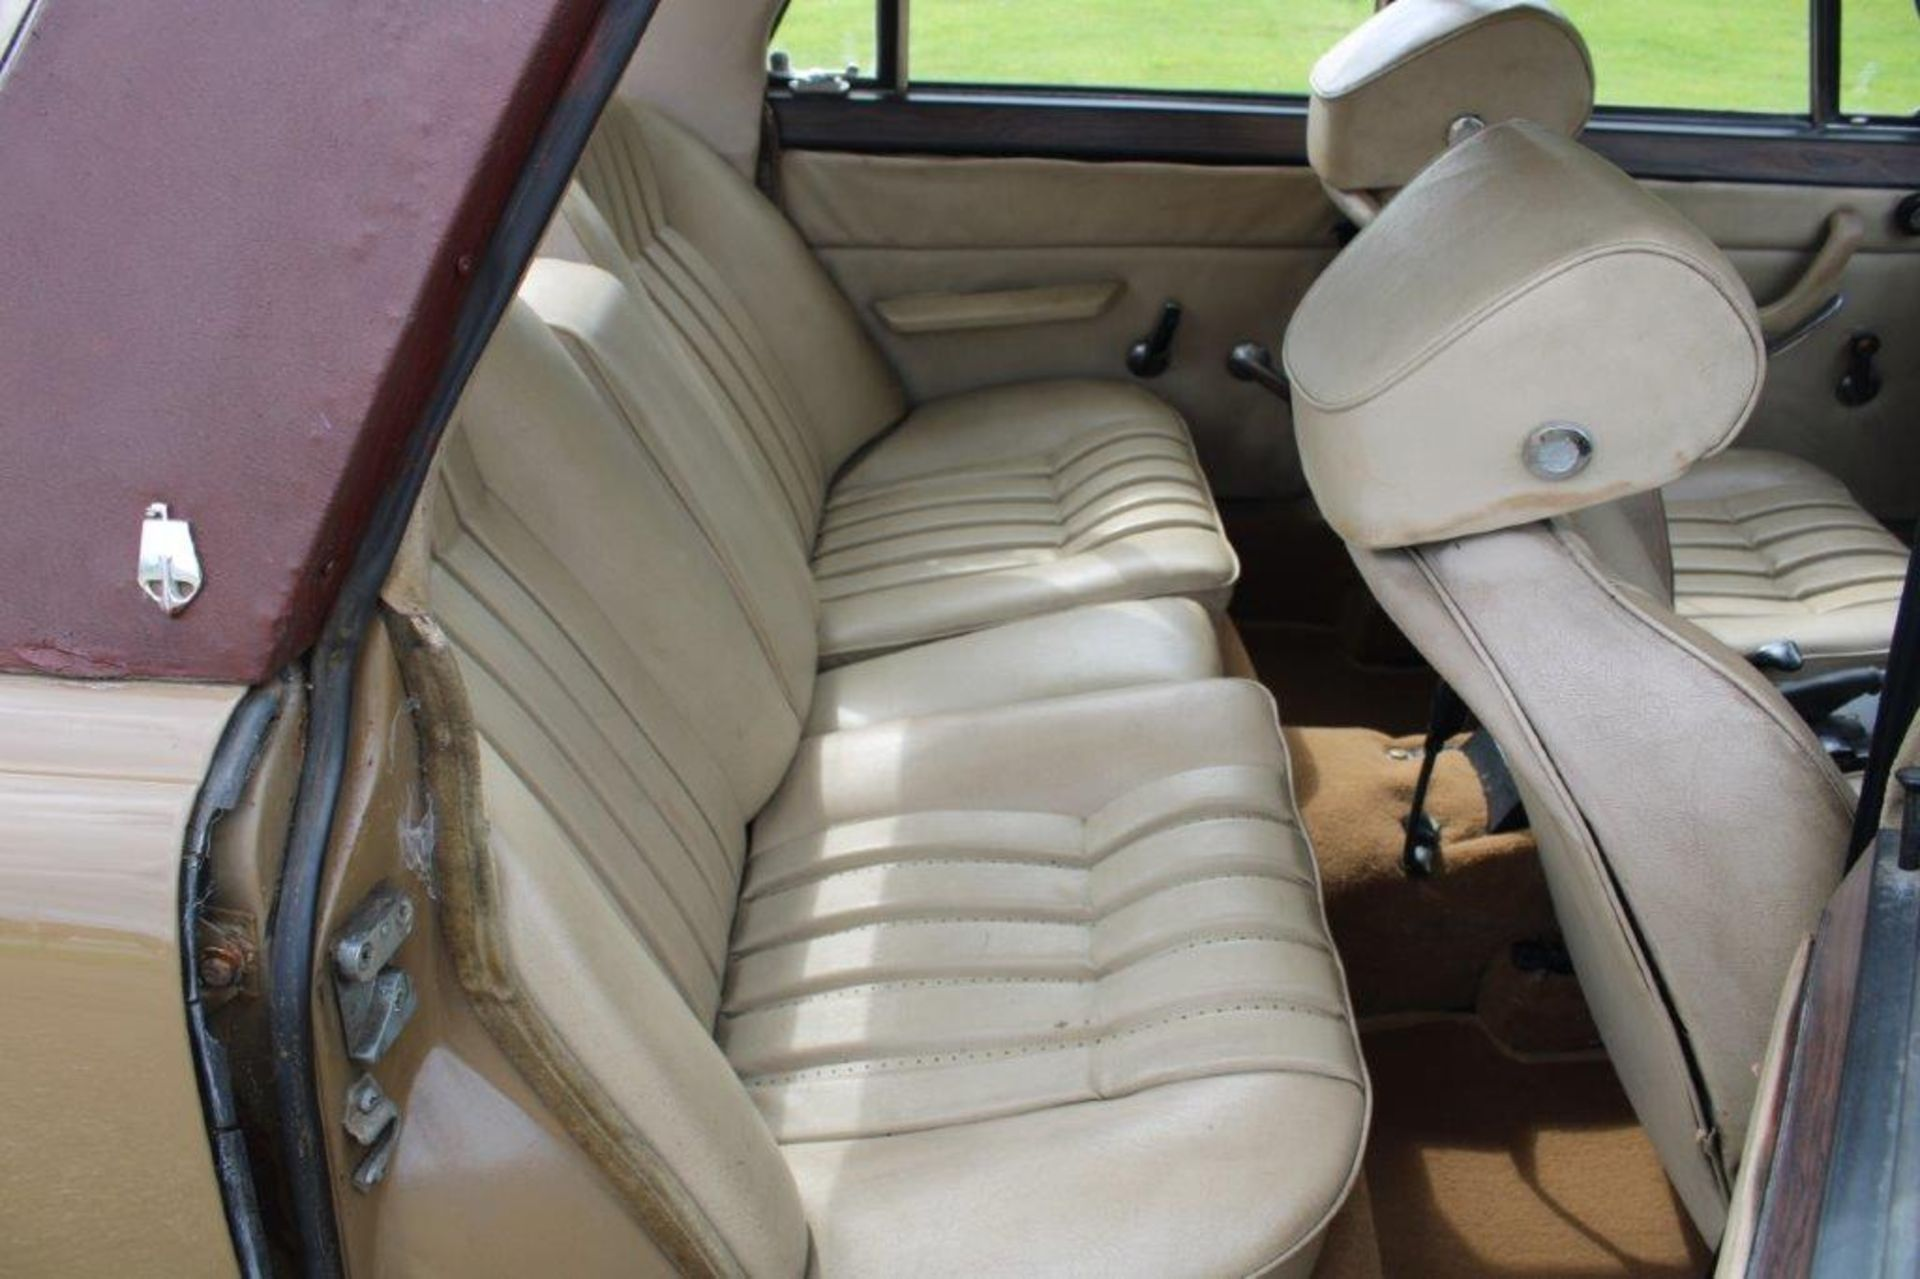 1970 Rover P6 3500 S 1 of 6 development cars - Image 14 of 21